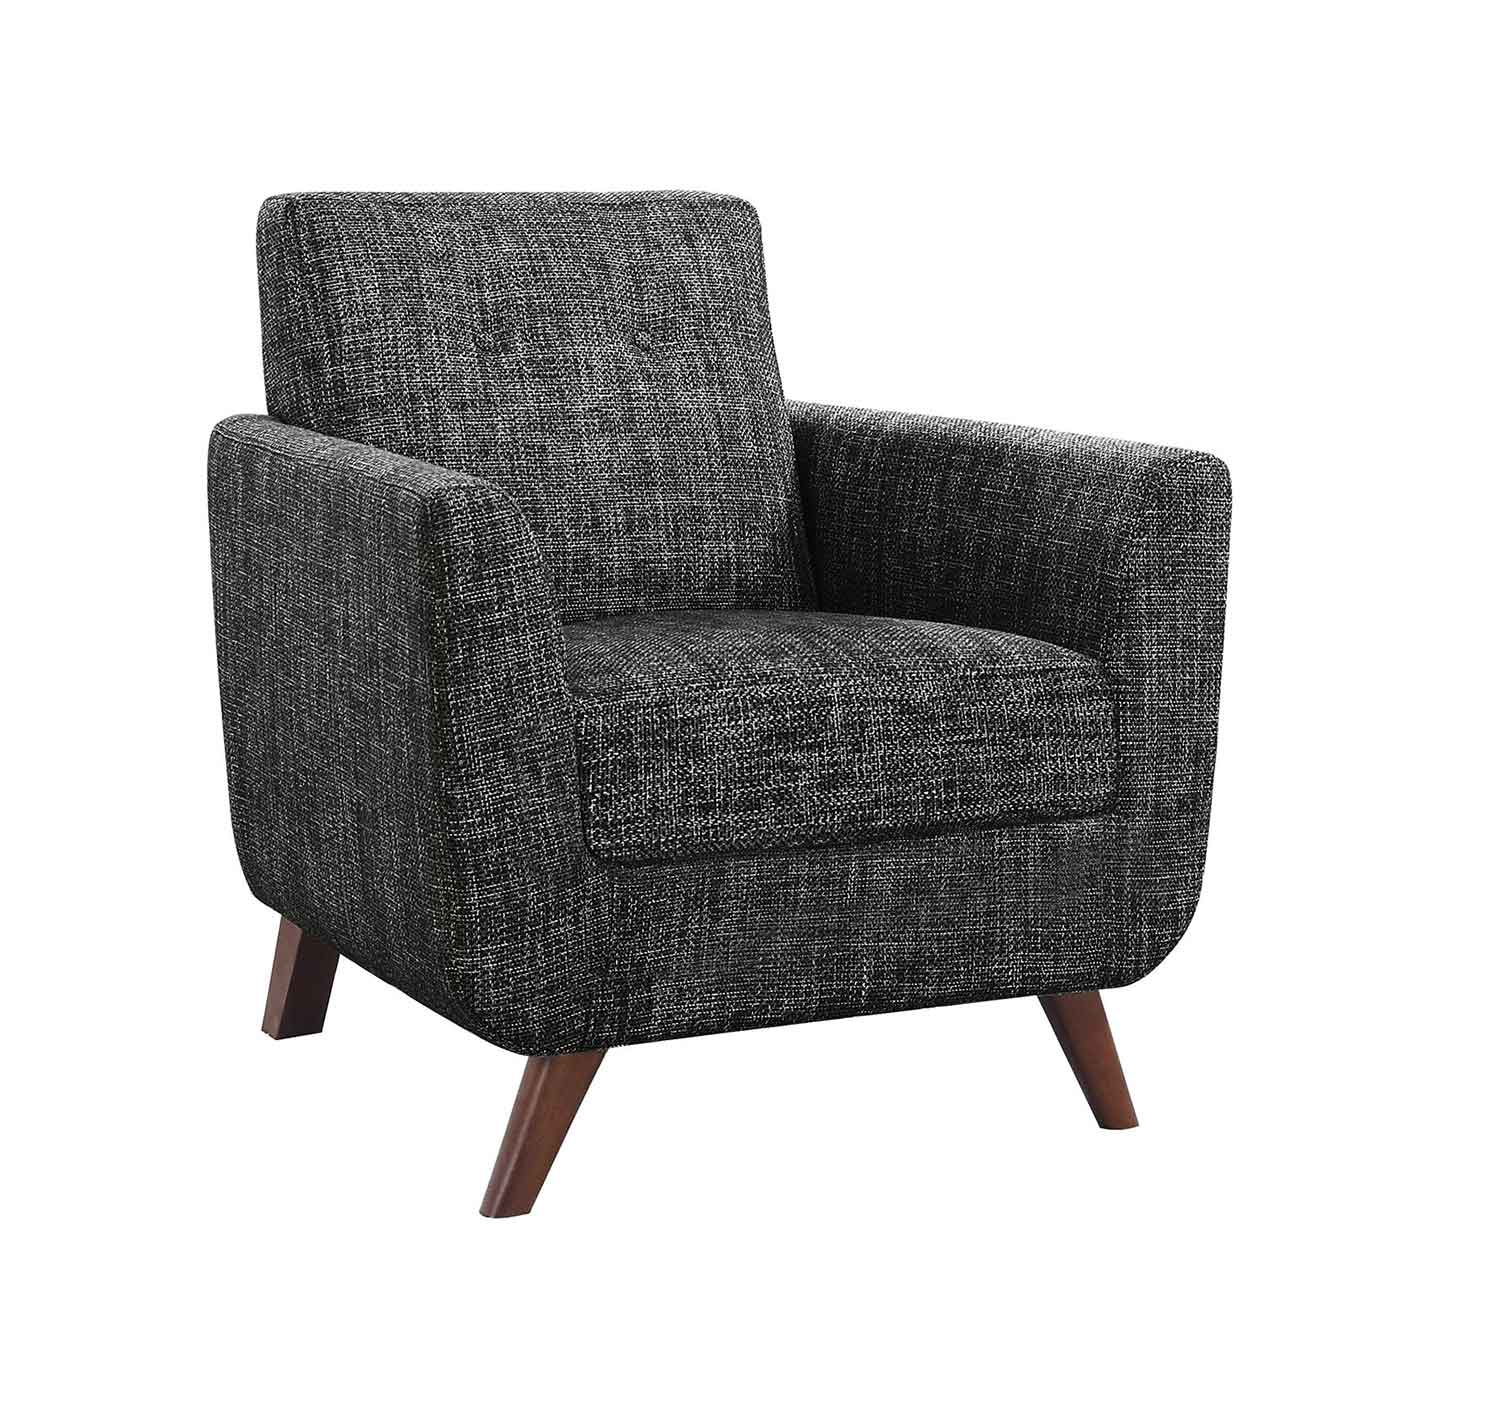 Coaster 903134 Accent Chair - Grey